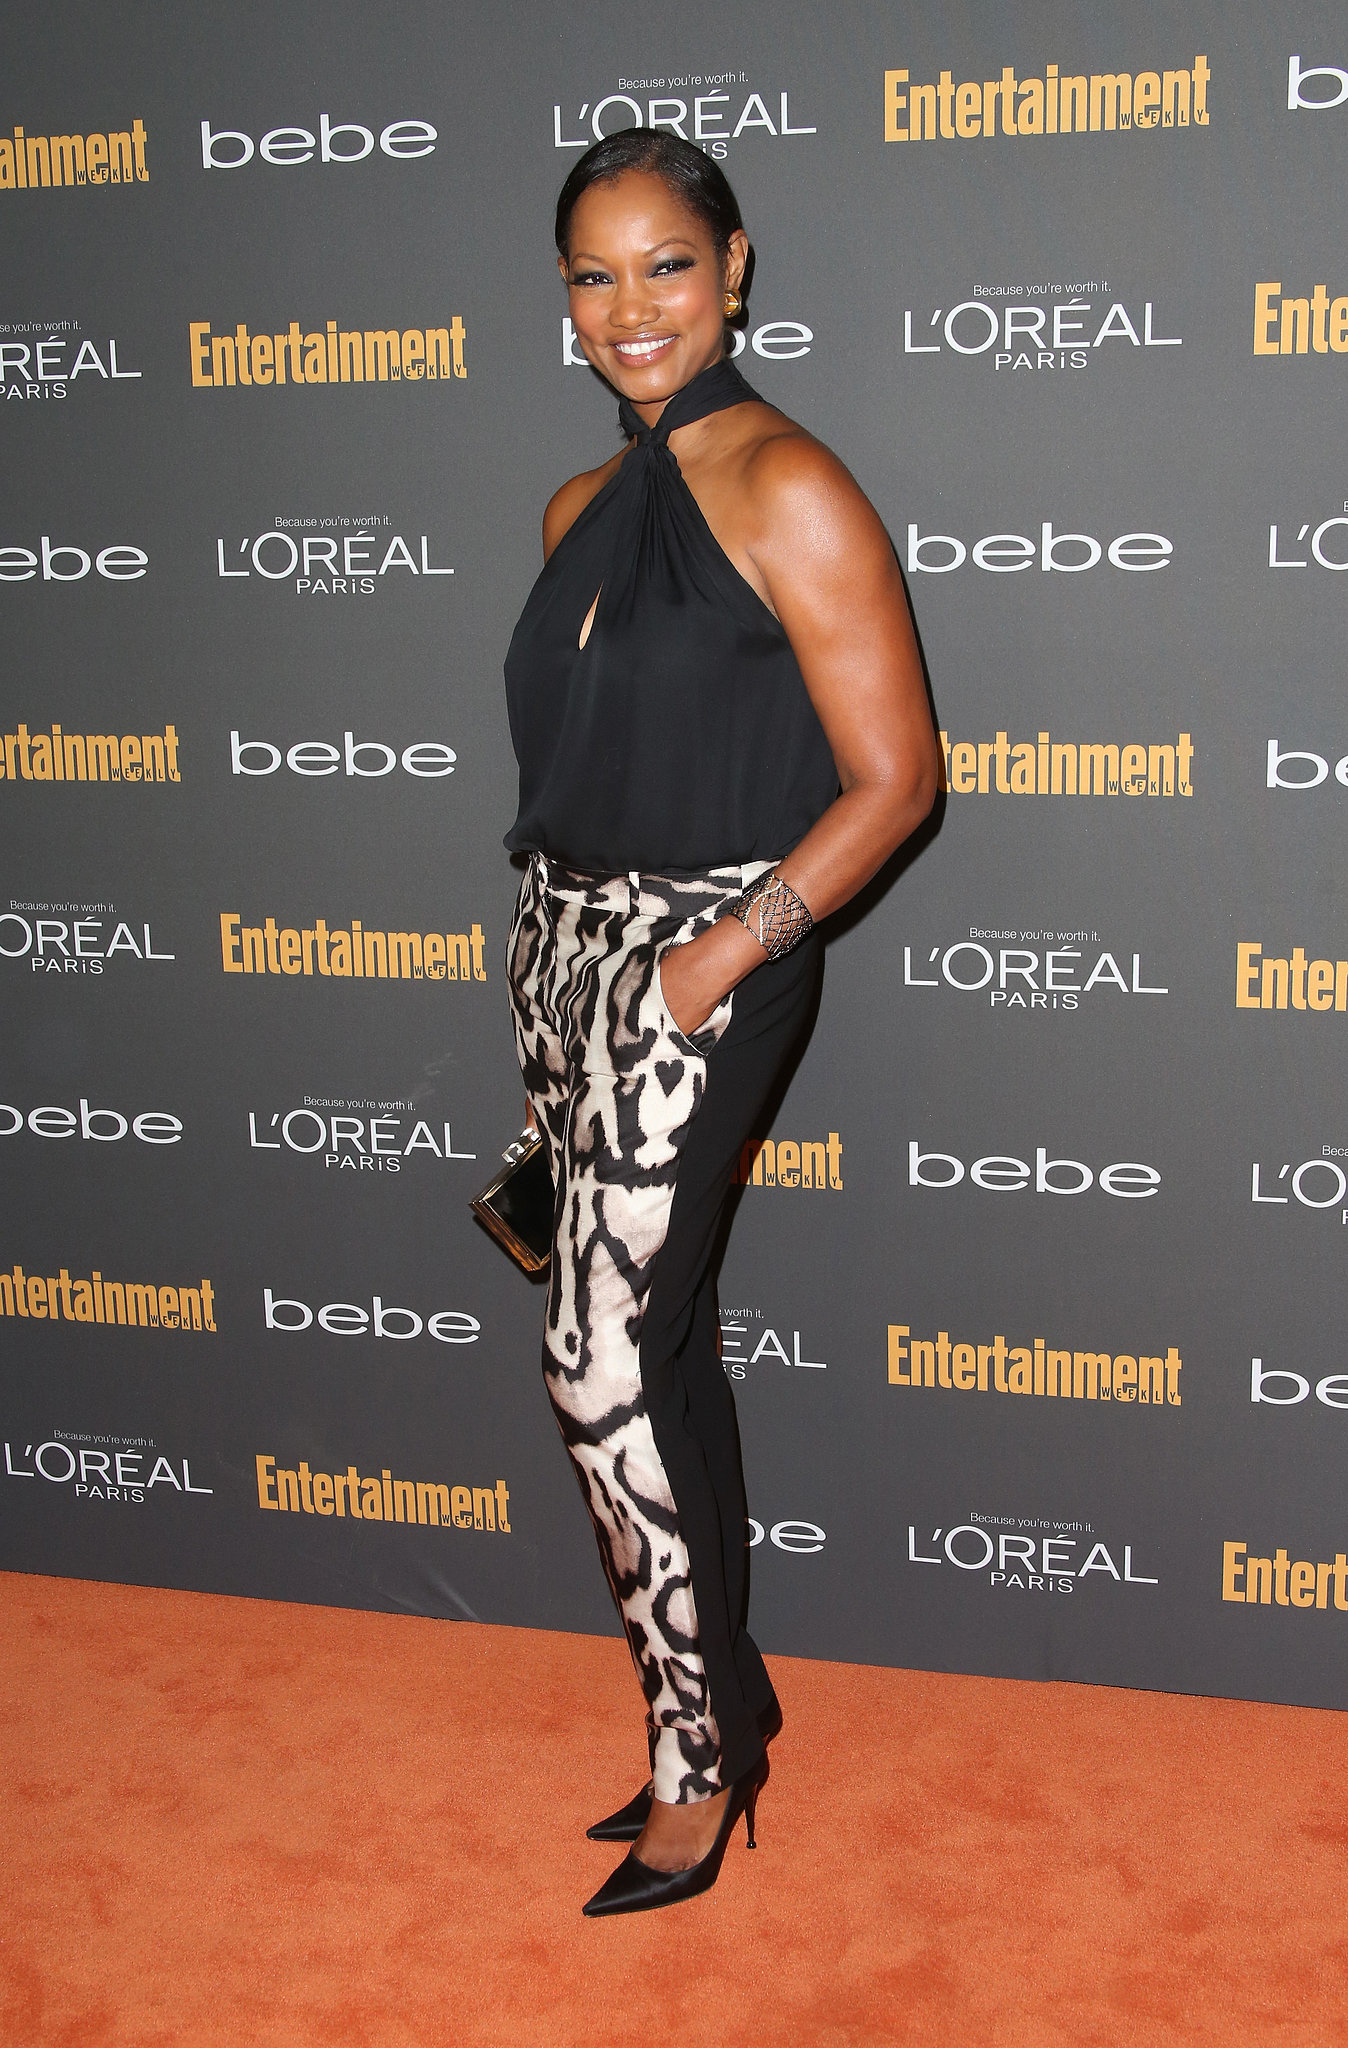 Garcelle Beauvais was one of the only pre-Emmys party attendees that kept it casual chic in a pair of animal-print trousers and a black halter top.